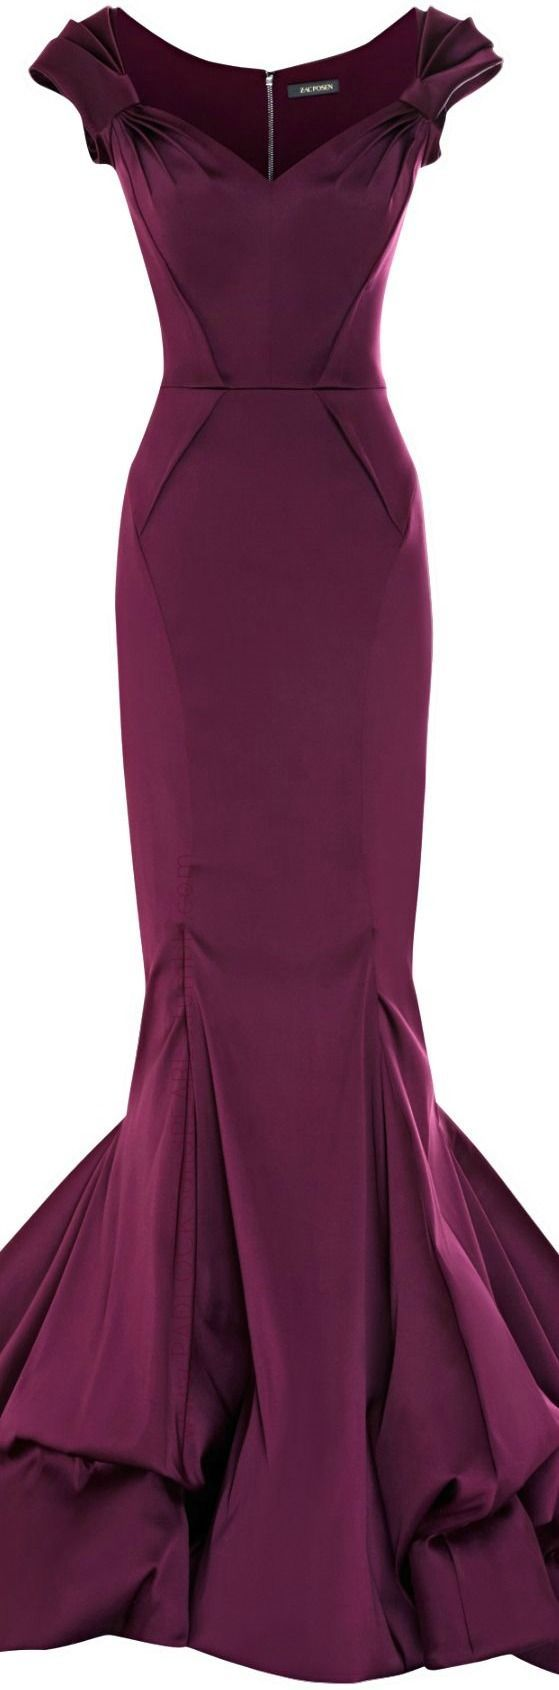 Wedding Wednesday: Pantone's 2015 Color of the Year - Marsala Wedding Details — Boston Wedding Planner - The Perfect Details